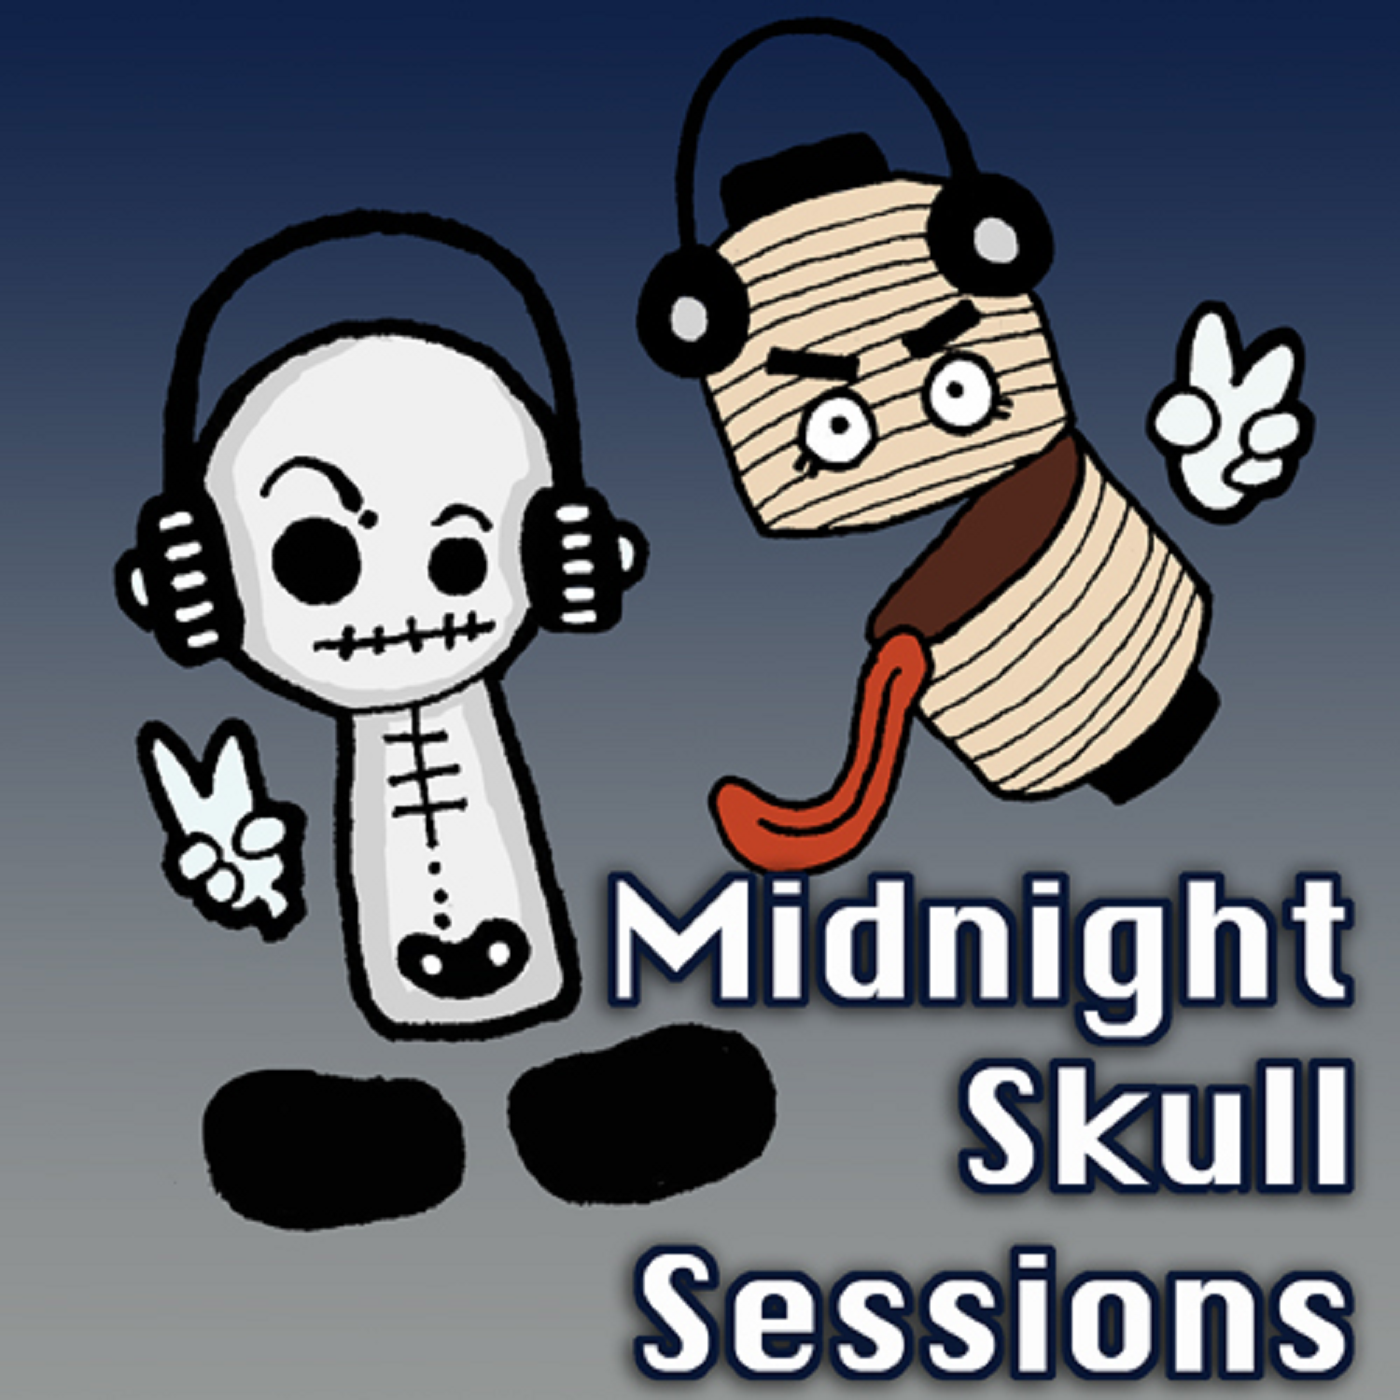 Midnight Skull Sessions - Episode 116 show art